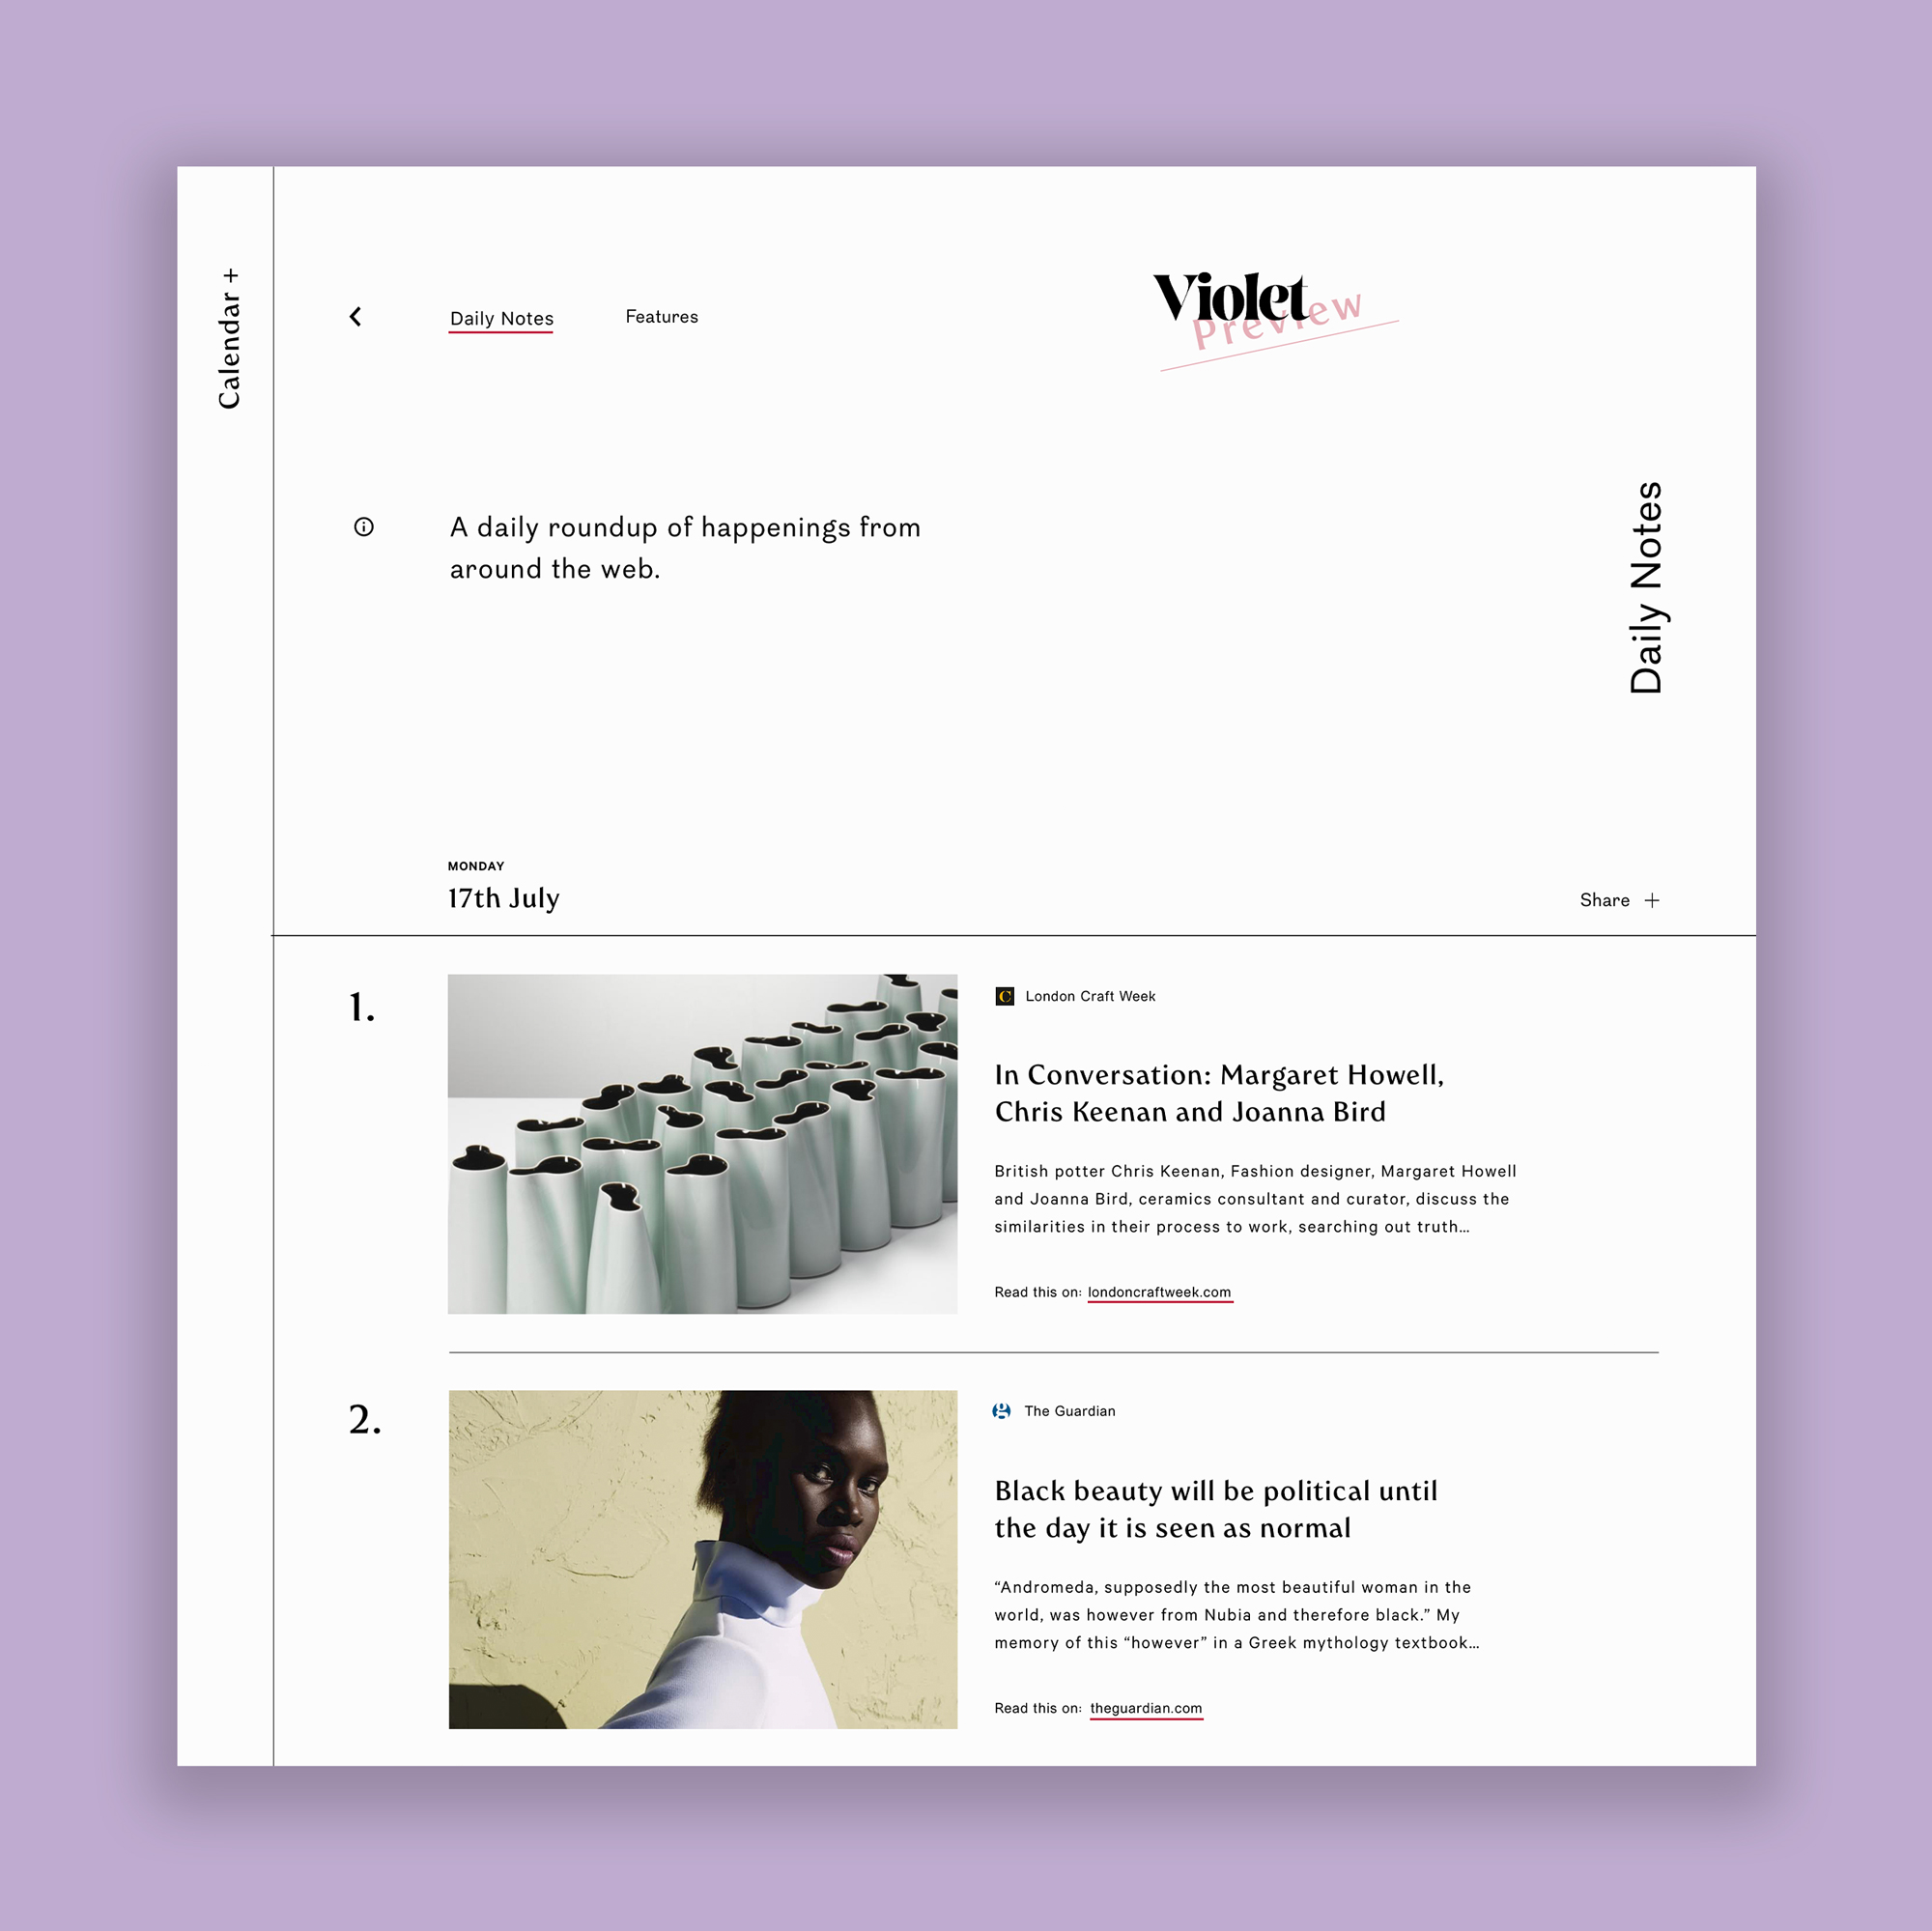 Violet_News_Desktop